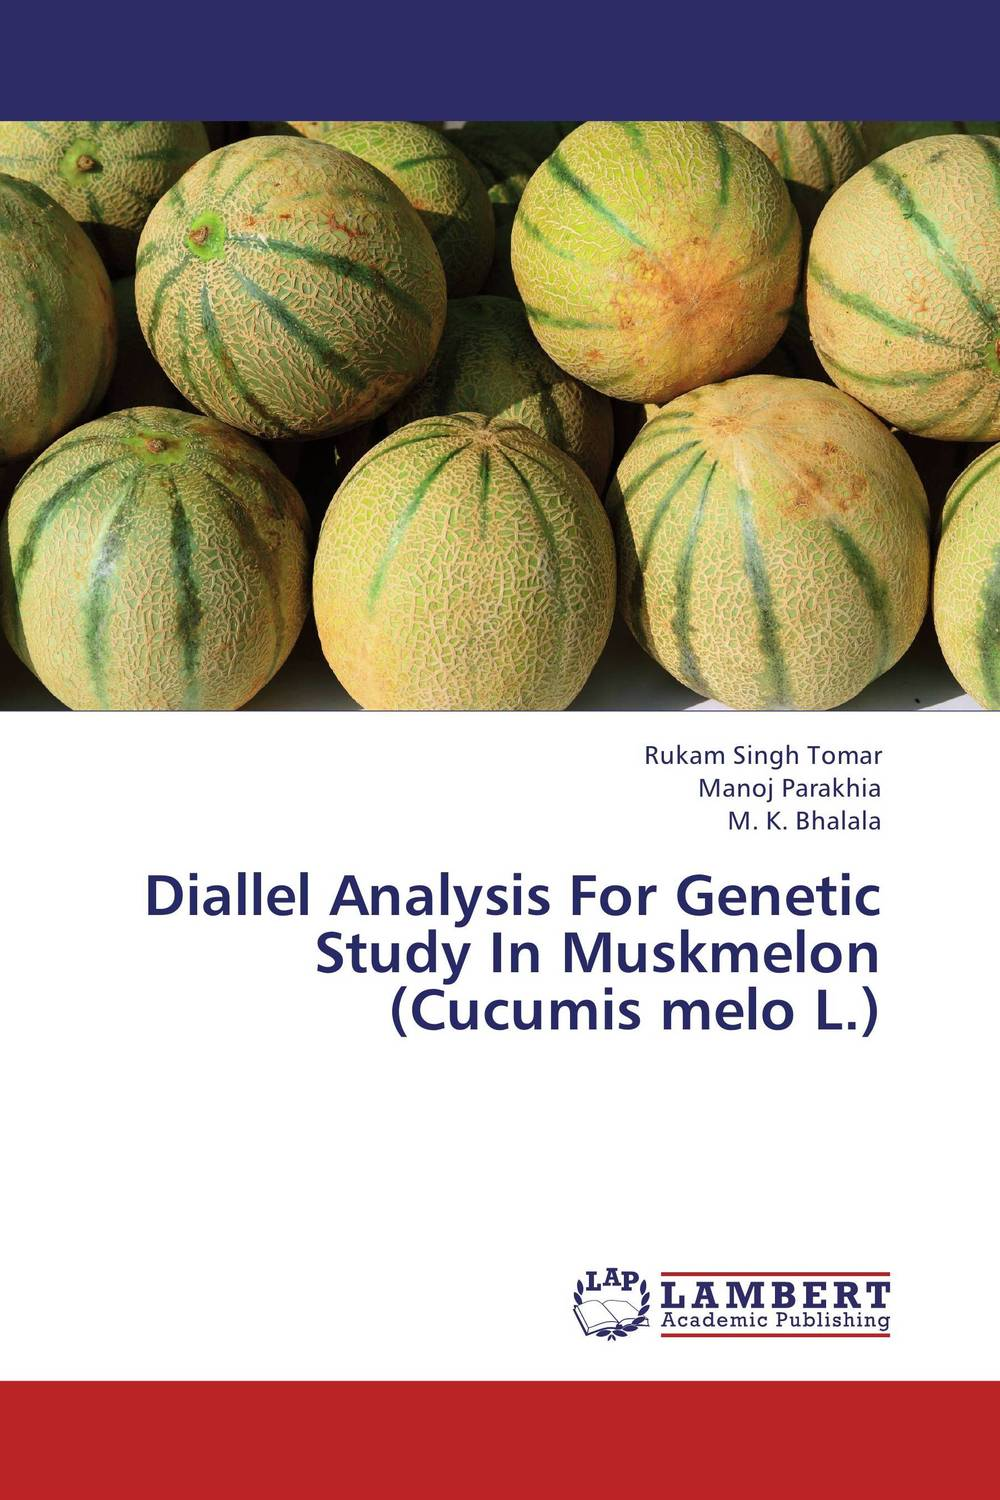 Diallel Analysis For Genetic Study In Muskmelon (Cucumis melo L.) plant genetic resources